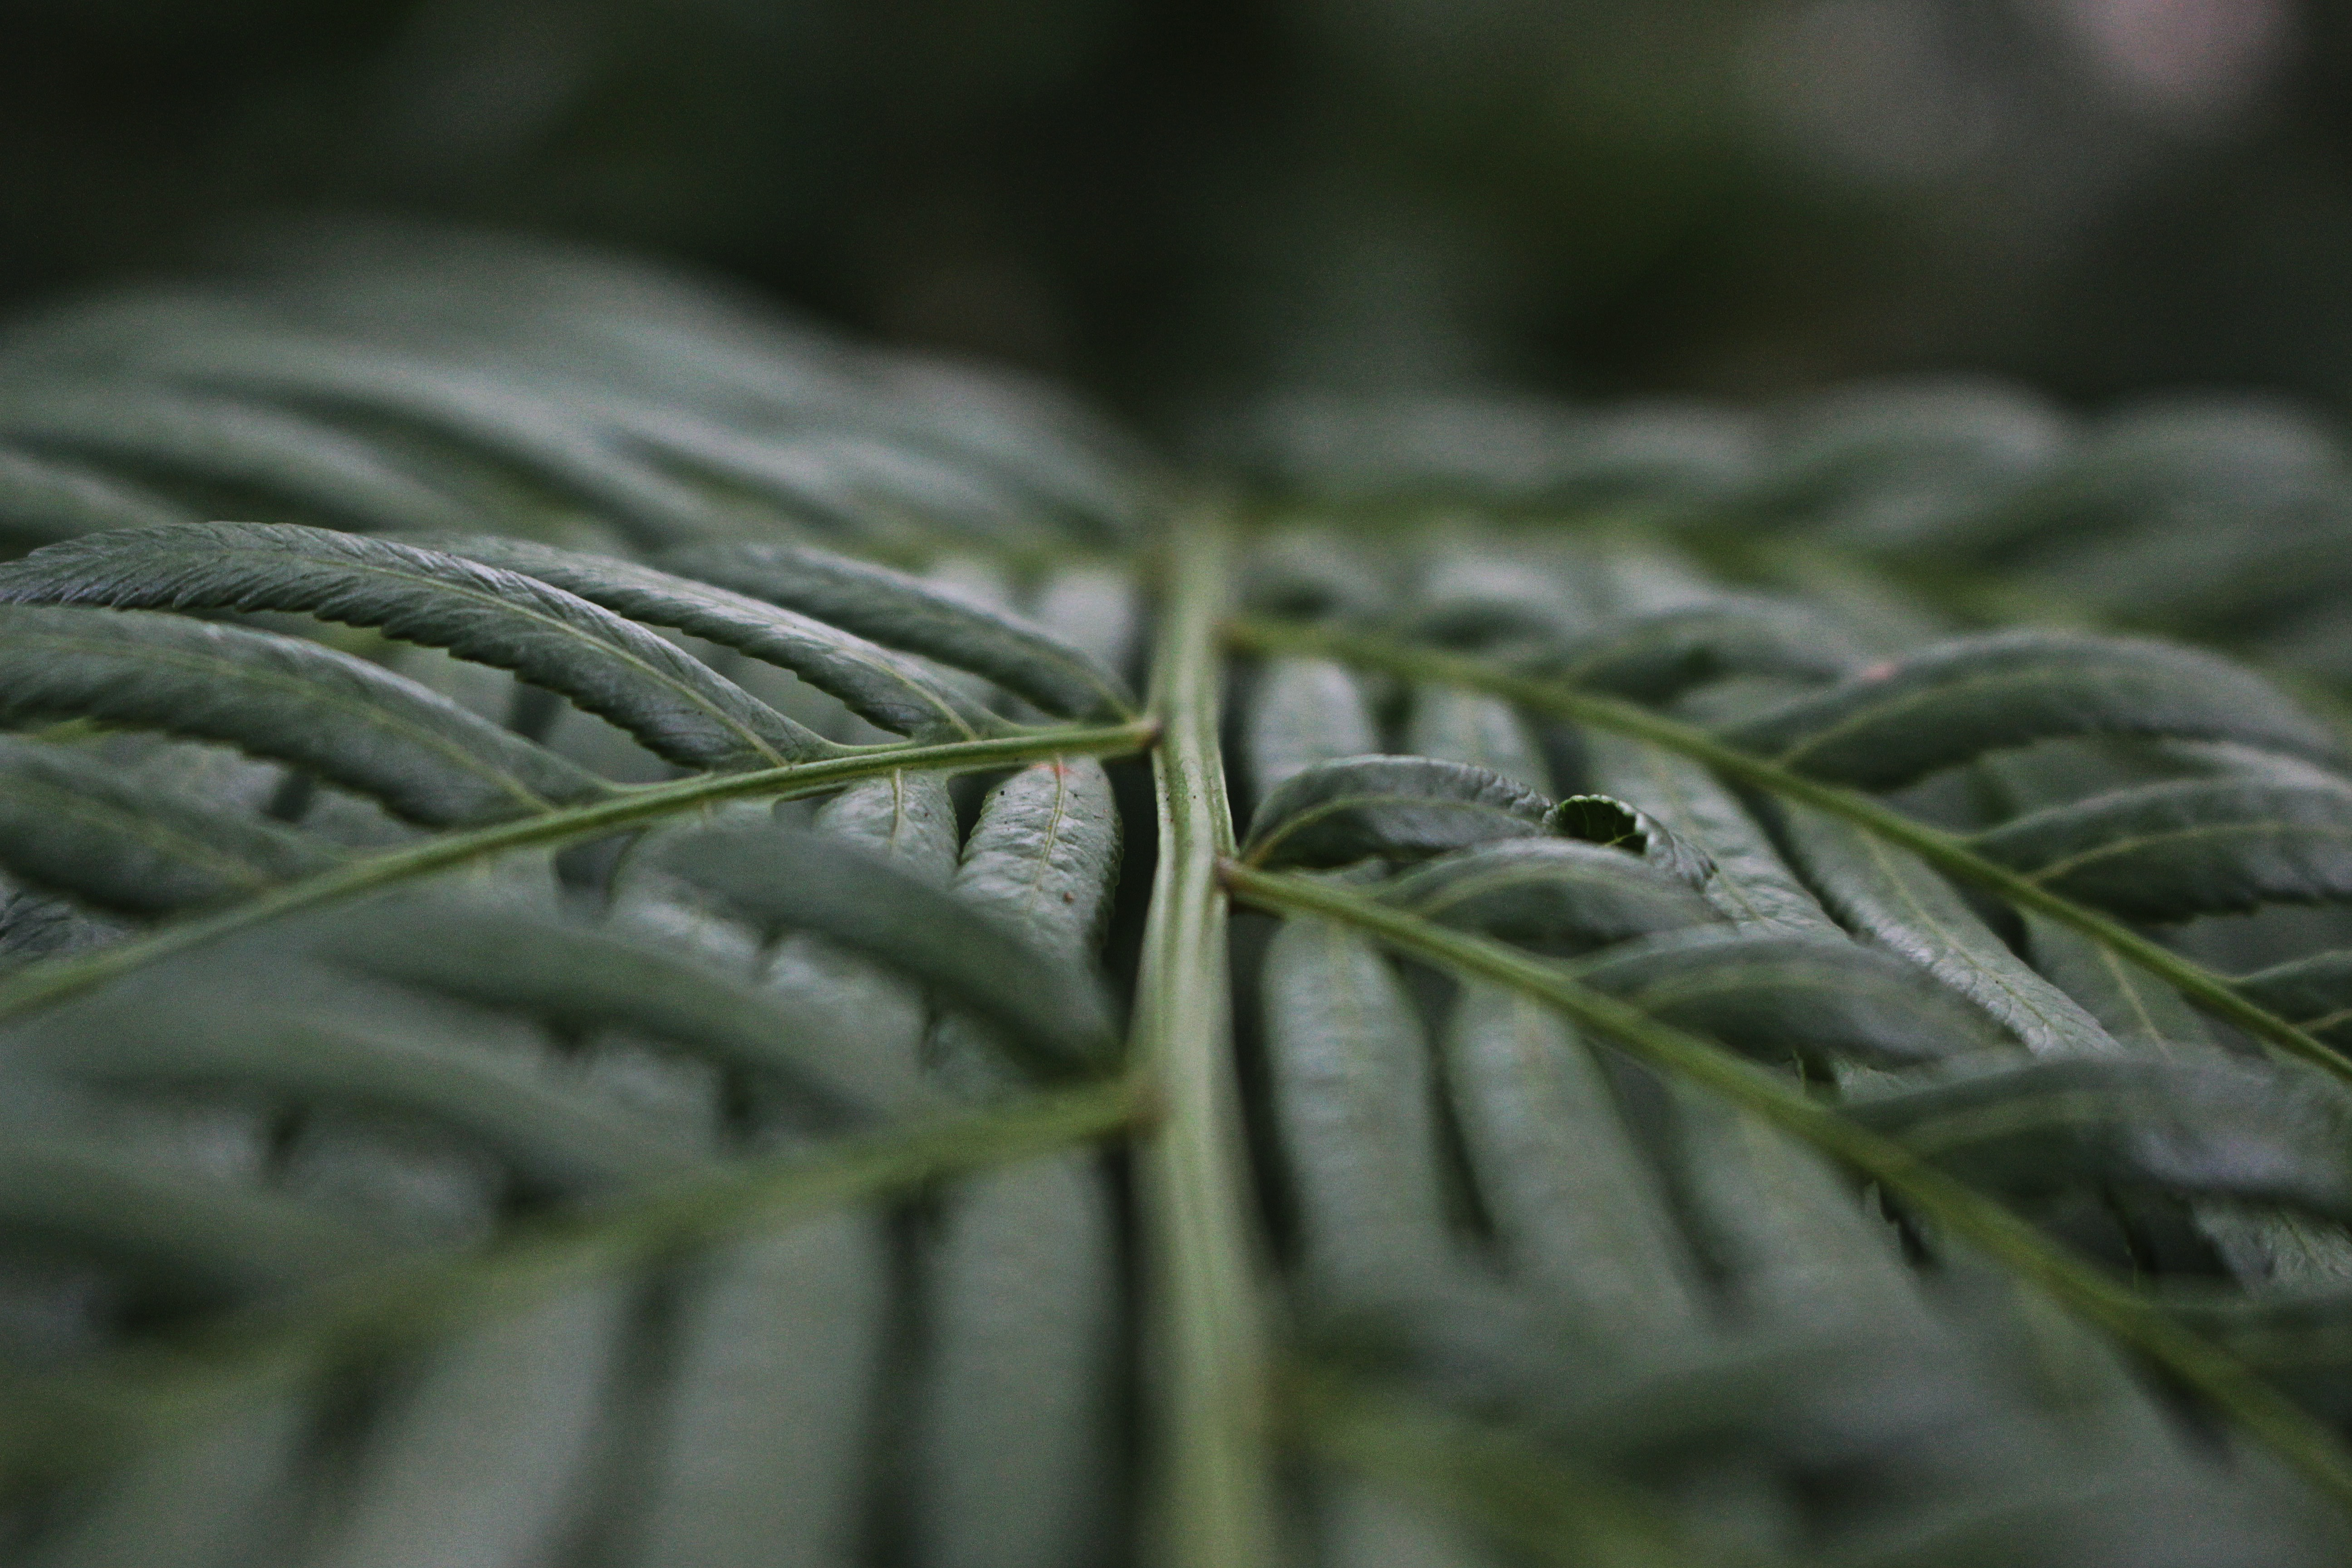 tilt photography of green leafed plants